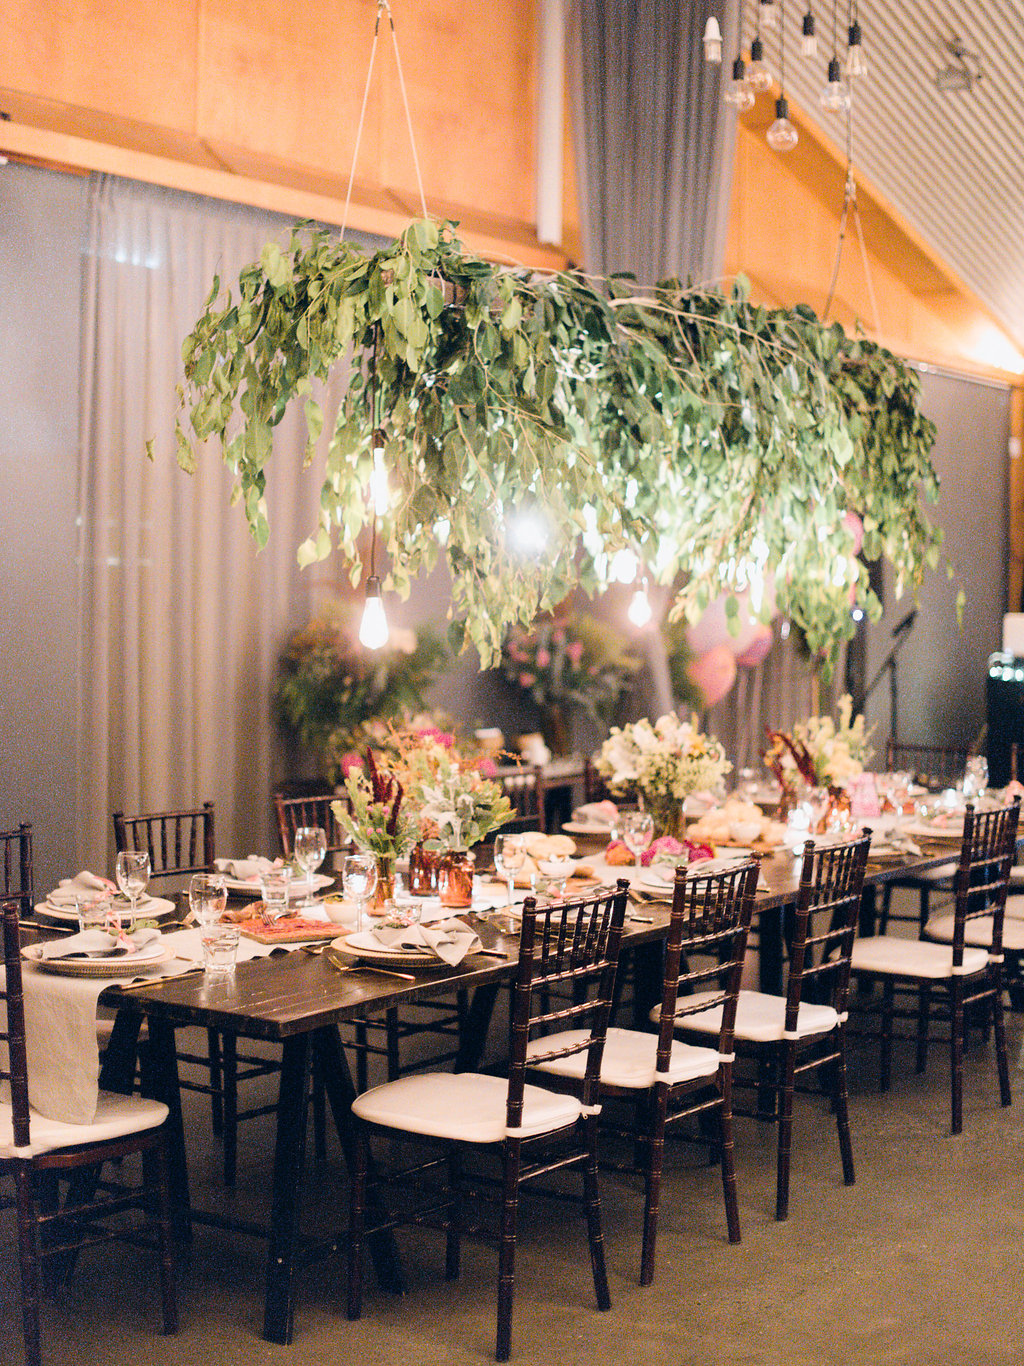 Hampton Event Hire - Wedding and Event Hire | Osteria Casuarina Wedding Reception with Hanging Foliage | Captured by Byron Loves Fawn Photography